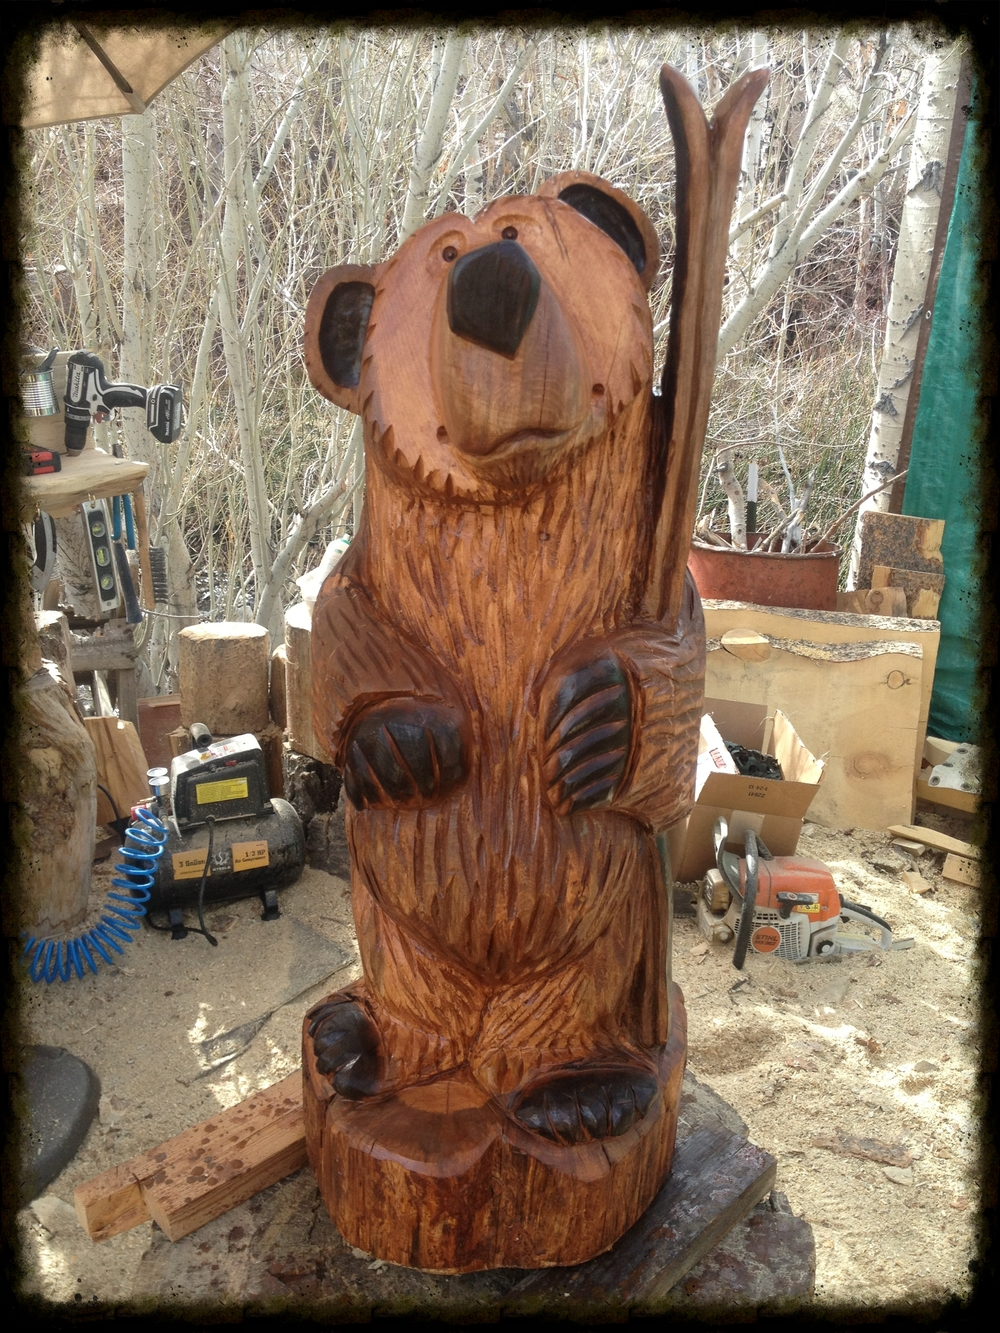 3 1/2 foot bear holding skis